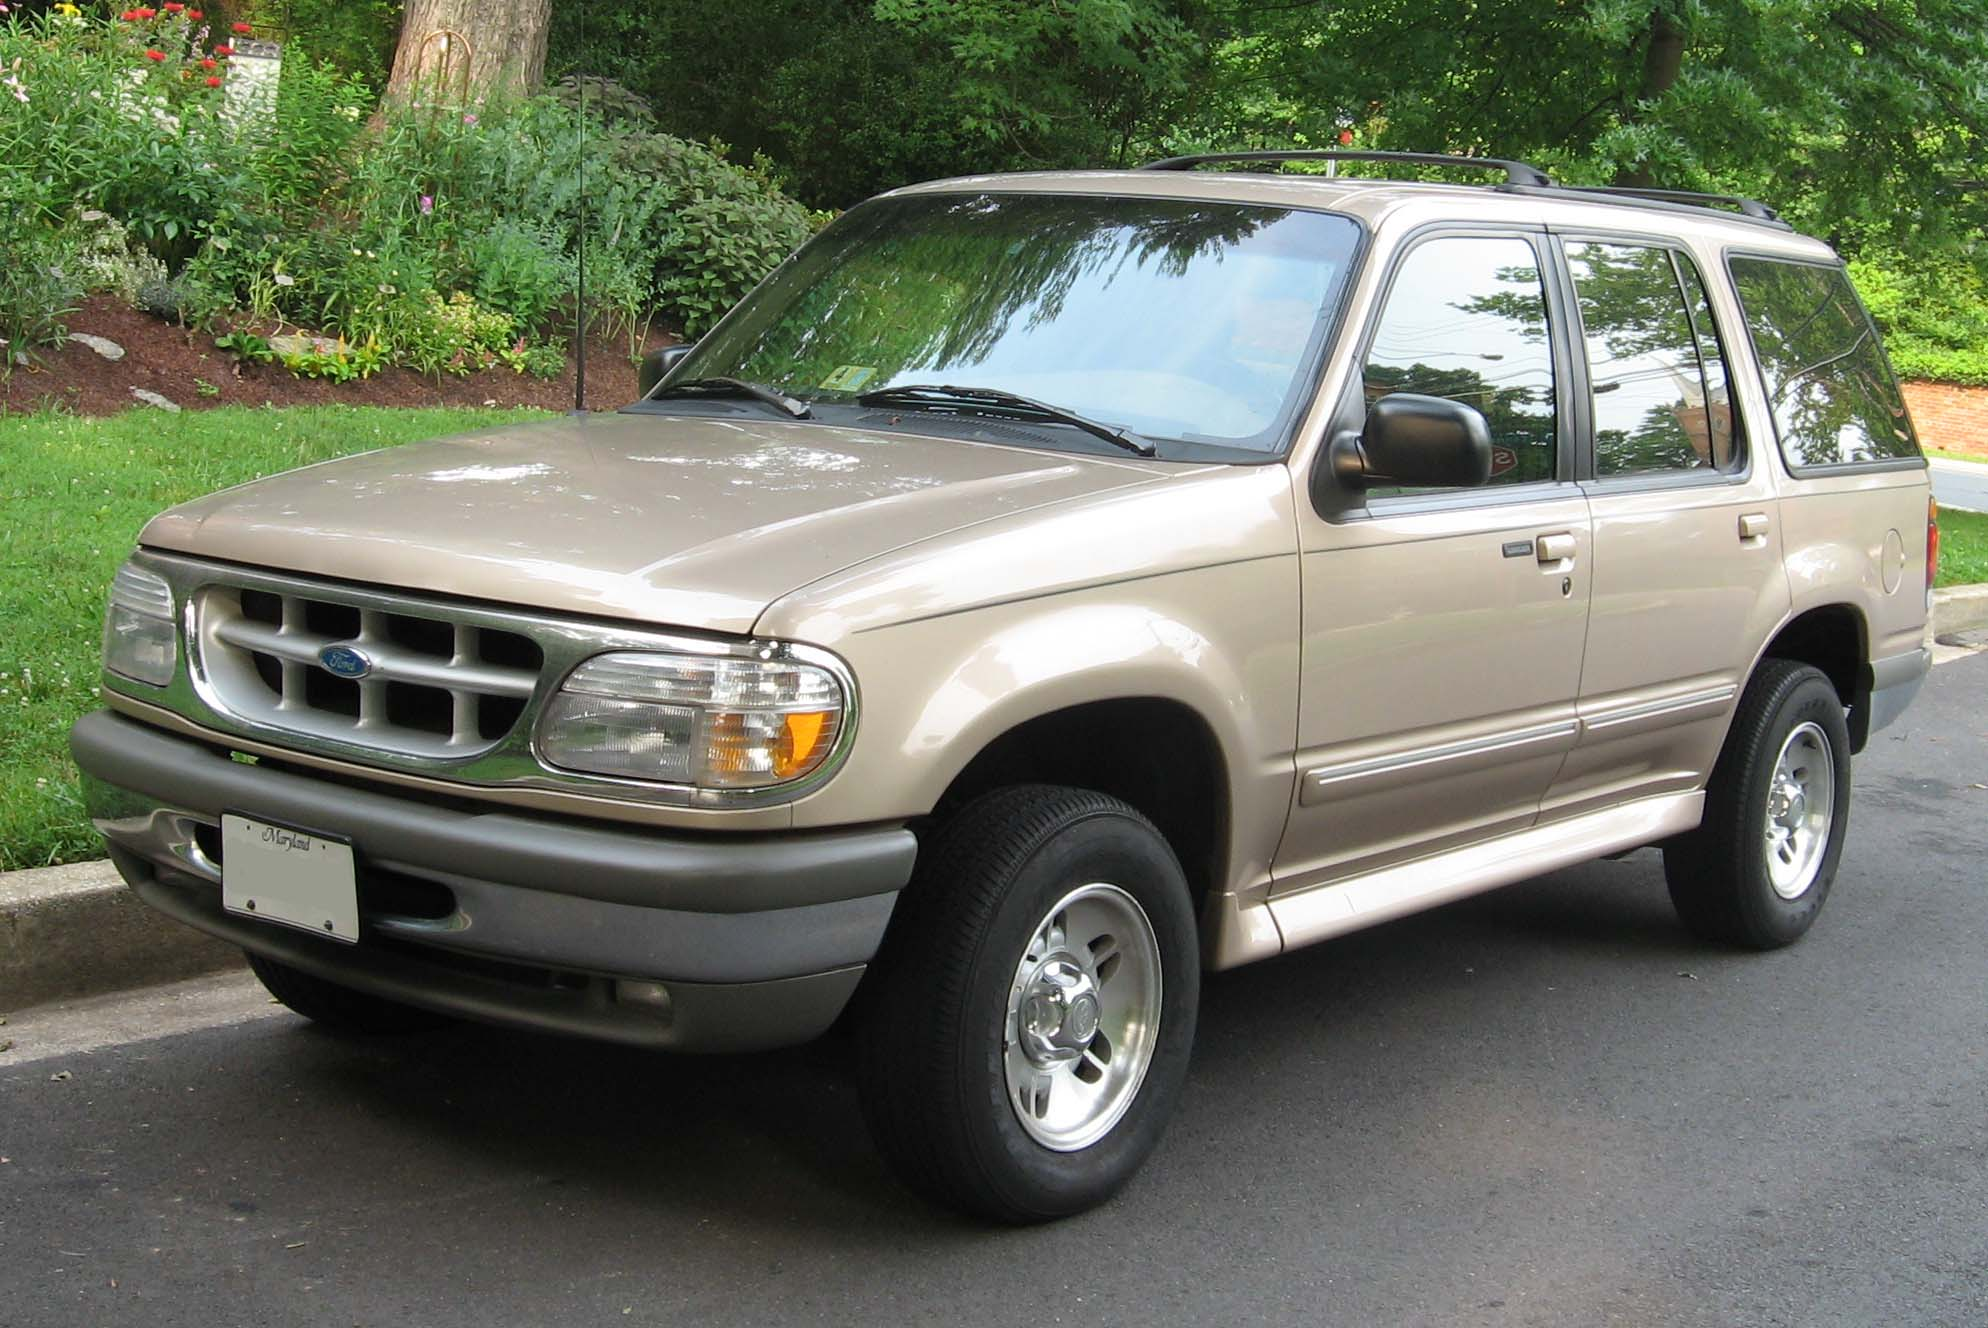 File:95-98 Ford Explorer.jpg